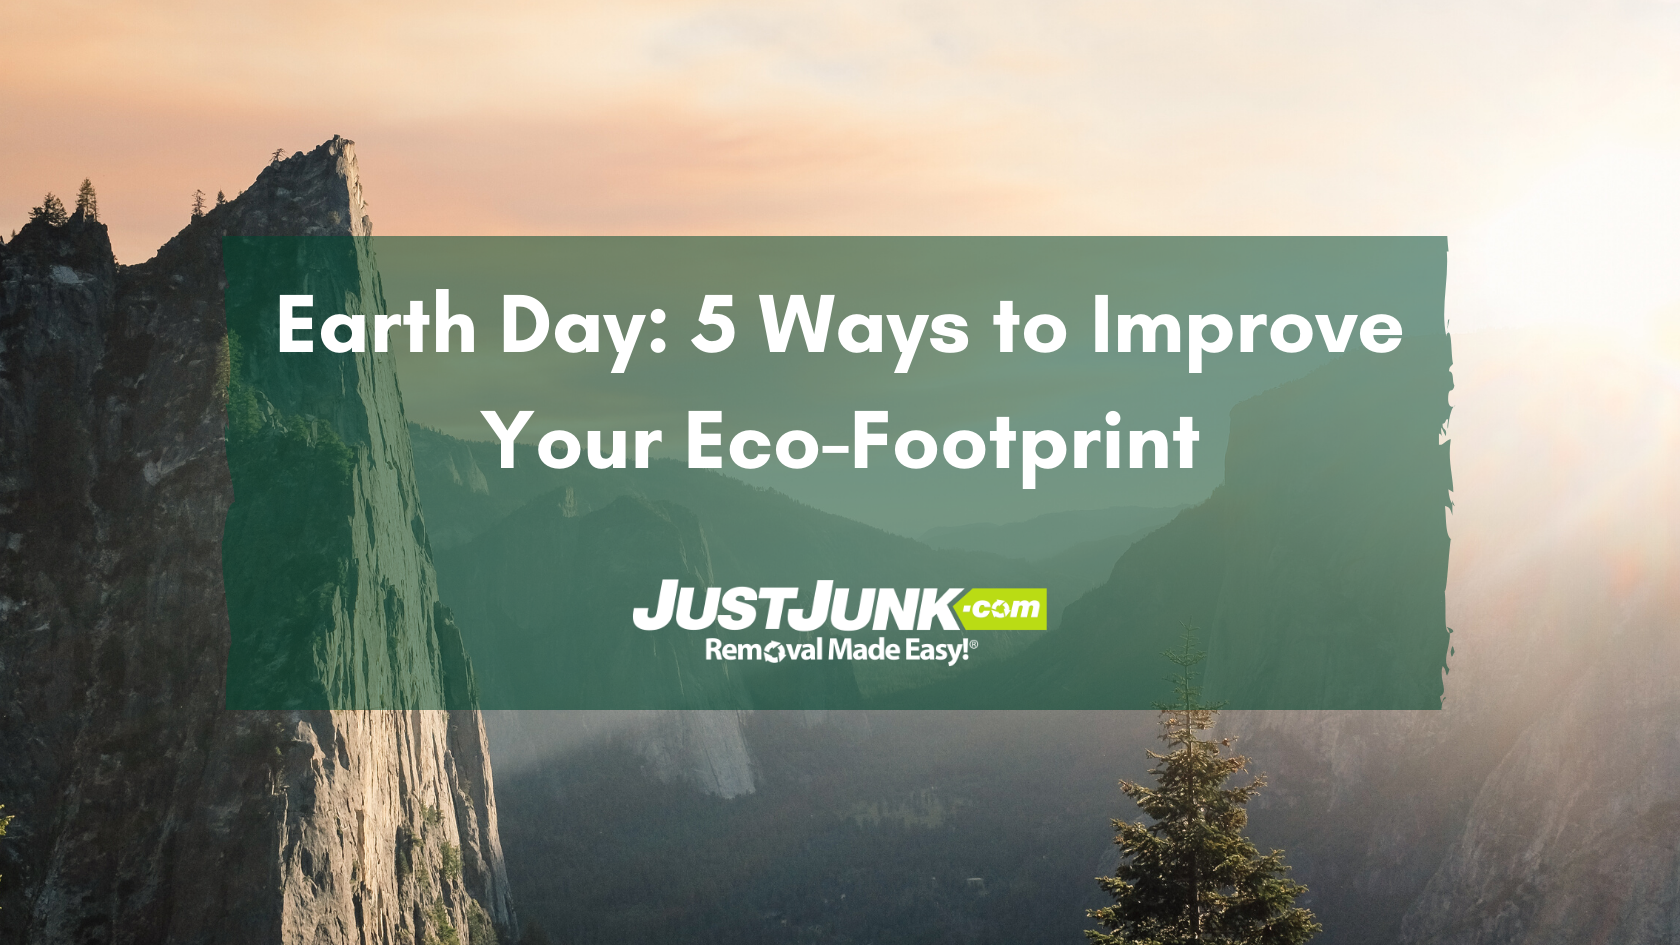 Eco-friendly tips for a better Earth Day impact Featured Image